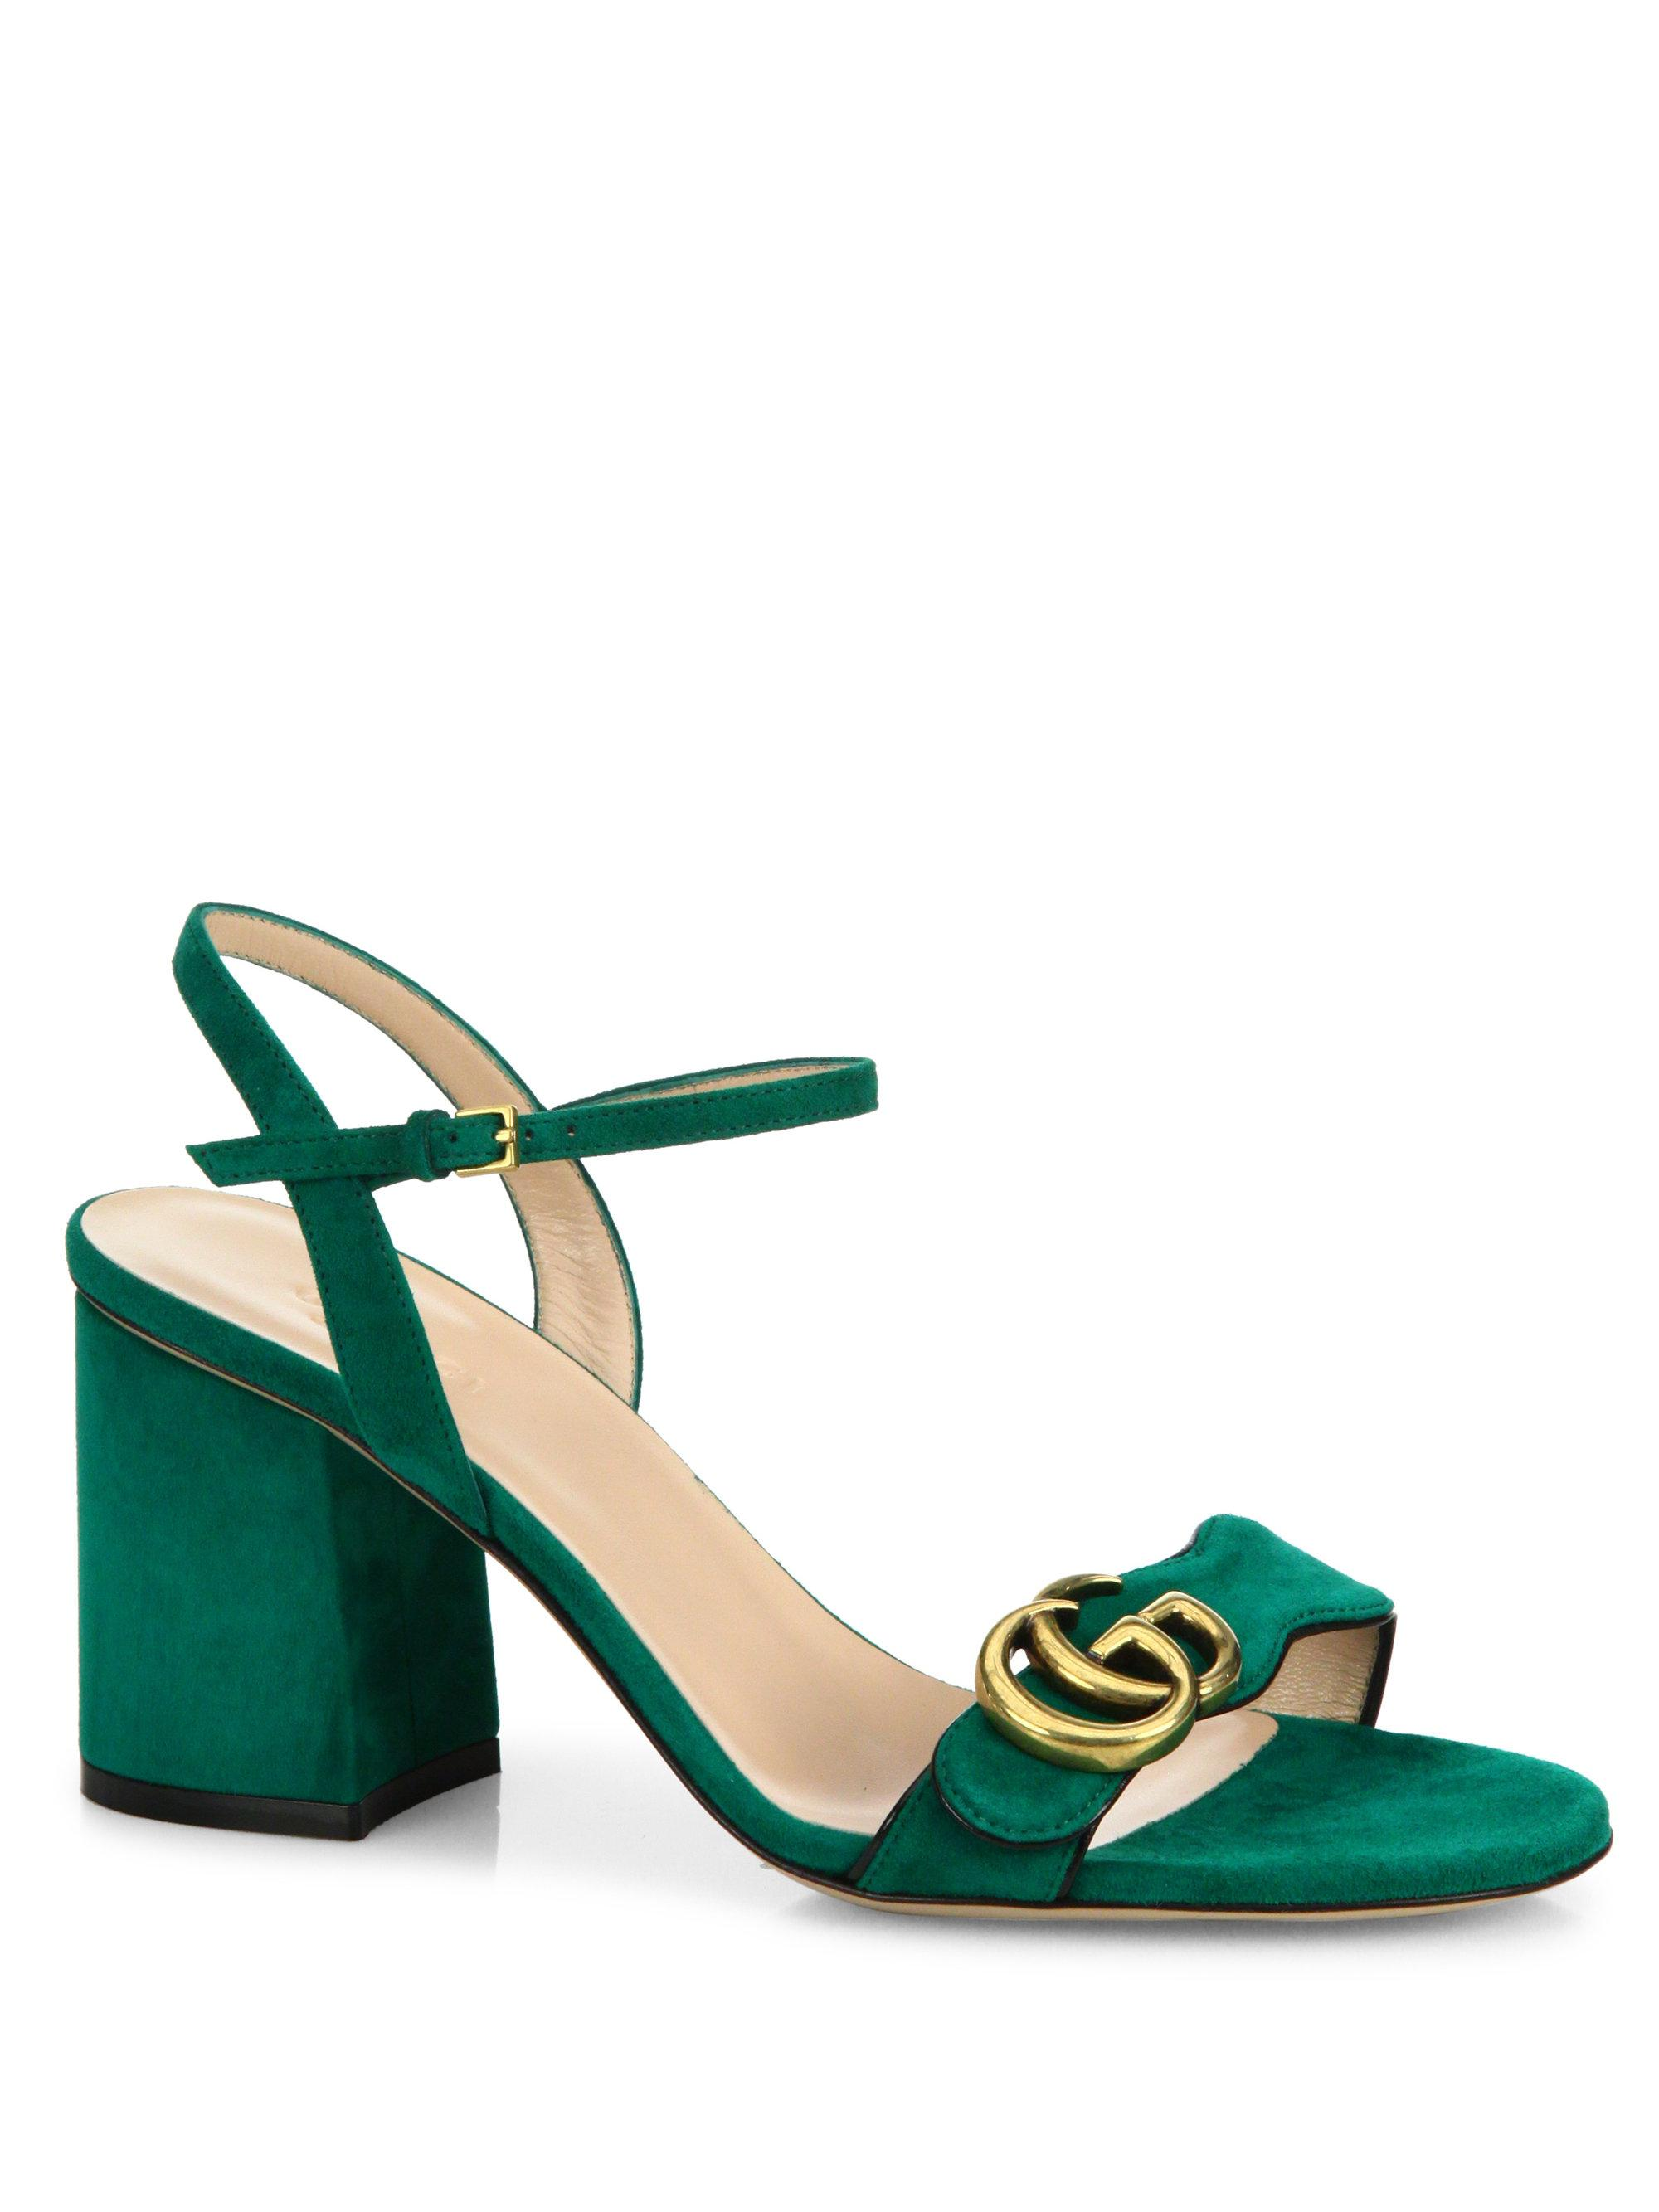 8d4d3ba09b4b Gucci Marmont Suede Block Heel Sandals in Green - Lyst